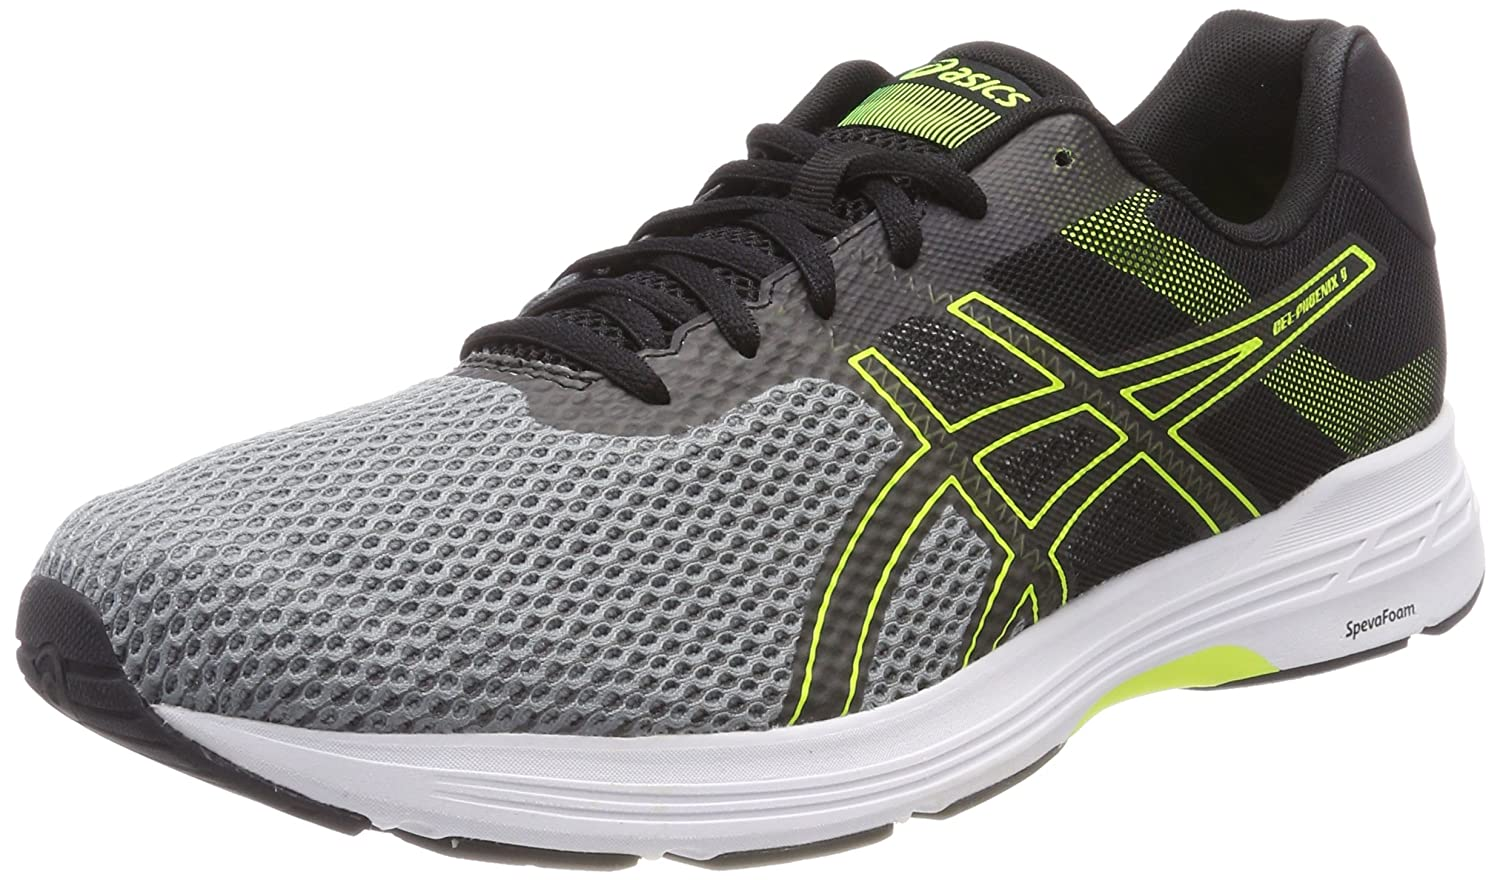 Asics Gel-Phoenix 9, Zapatillas de Running para Hombre 42.5 EU|Multicolor (Stone Grey/Black/Safety Yellow 1190)